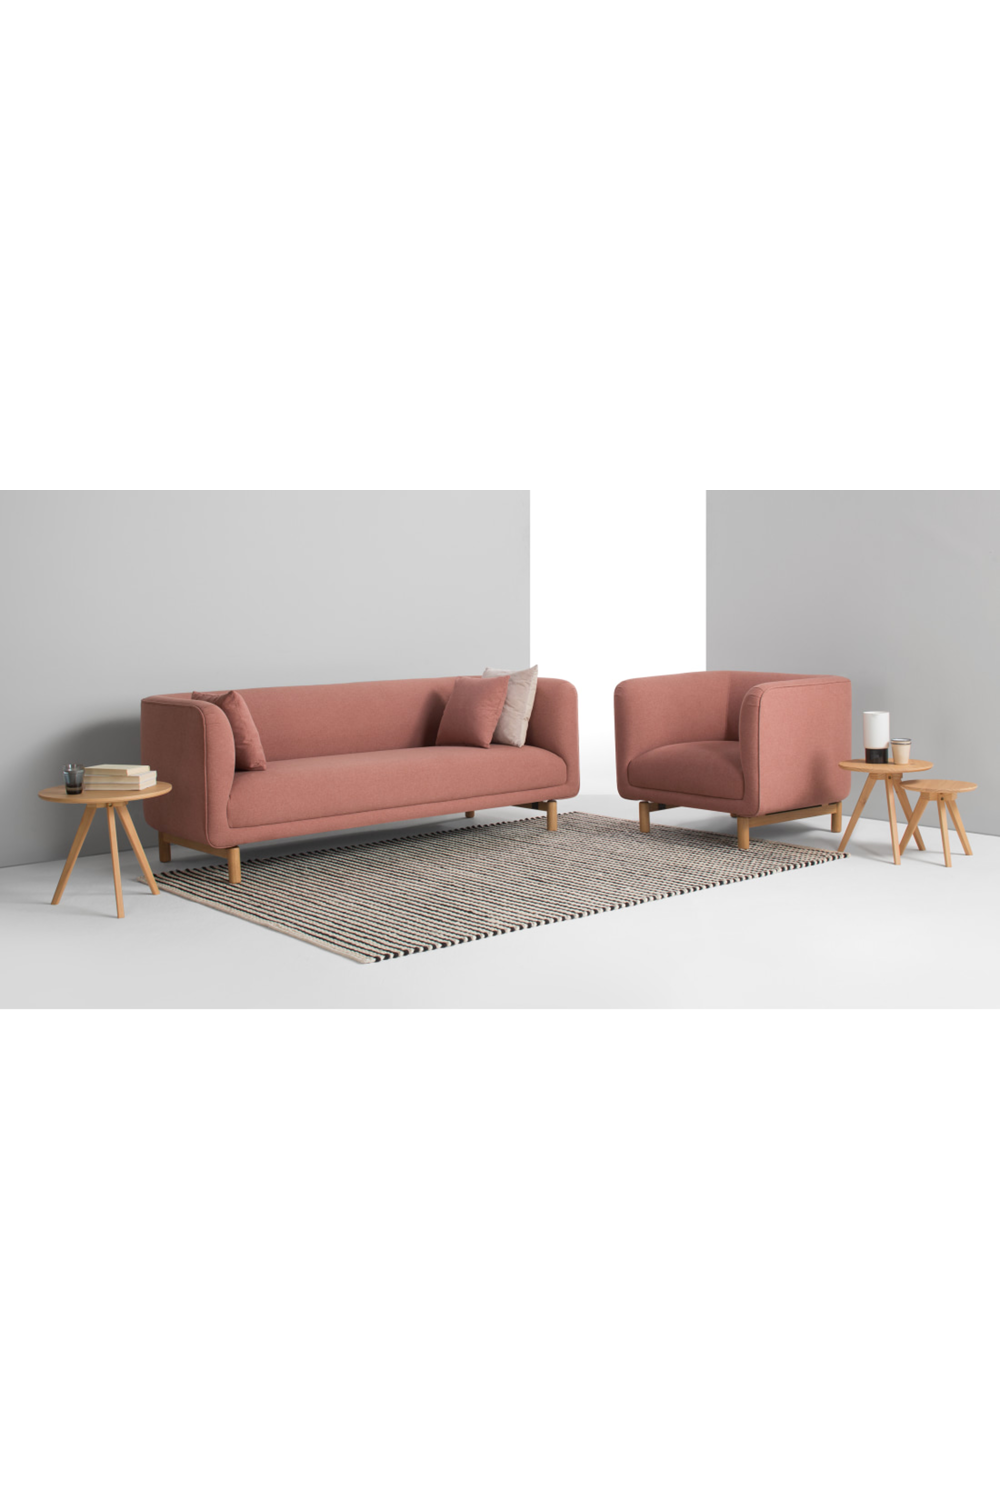 Becca 3 Sitzer Sofa Altrosa Beautiful Living Rooms Pink Sofa Decorating Your Home